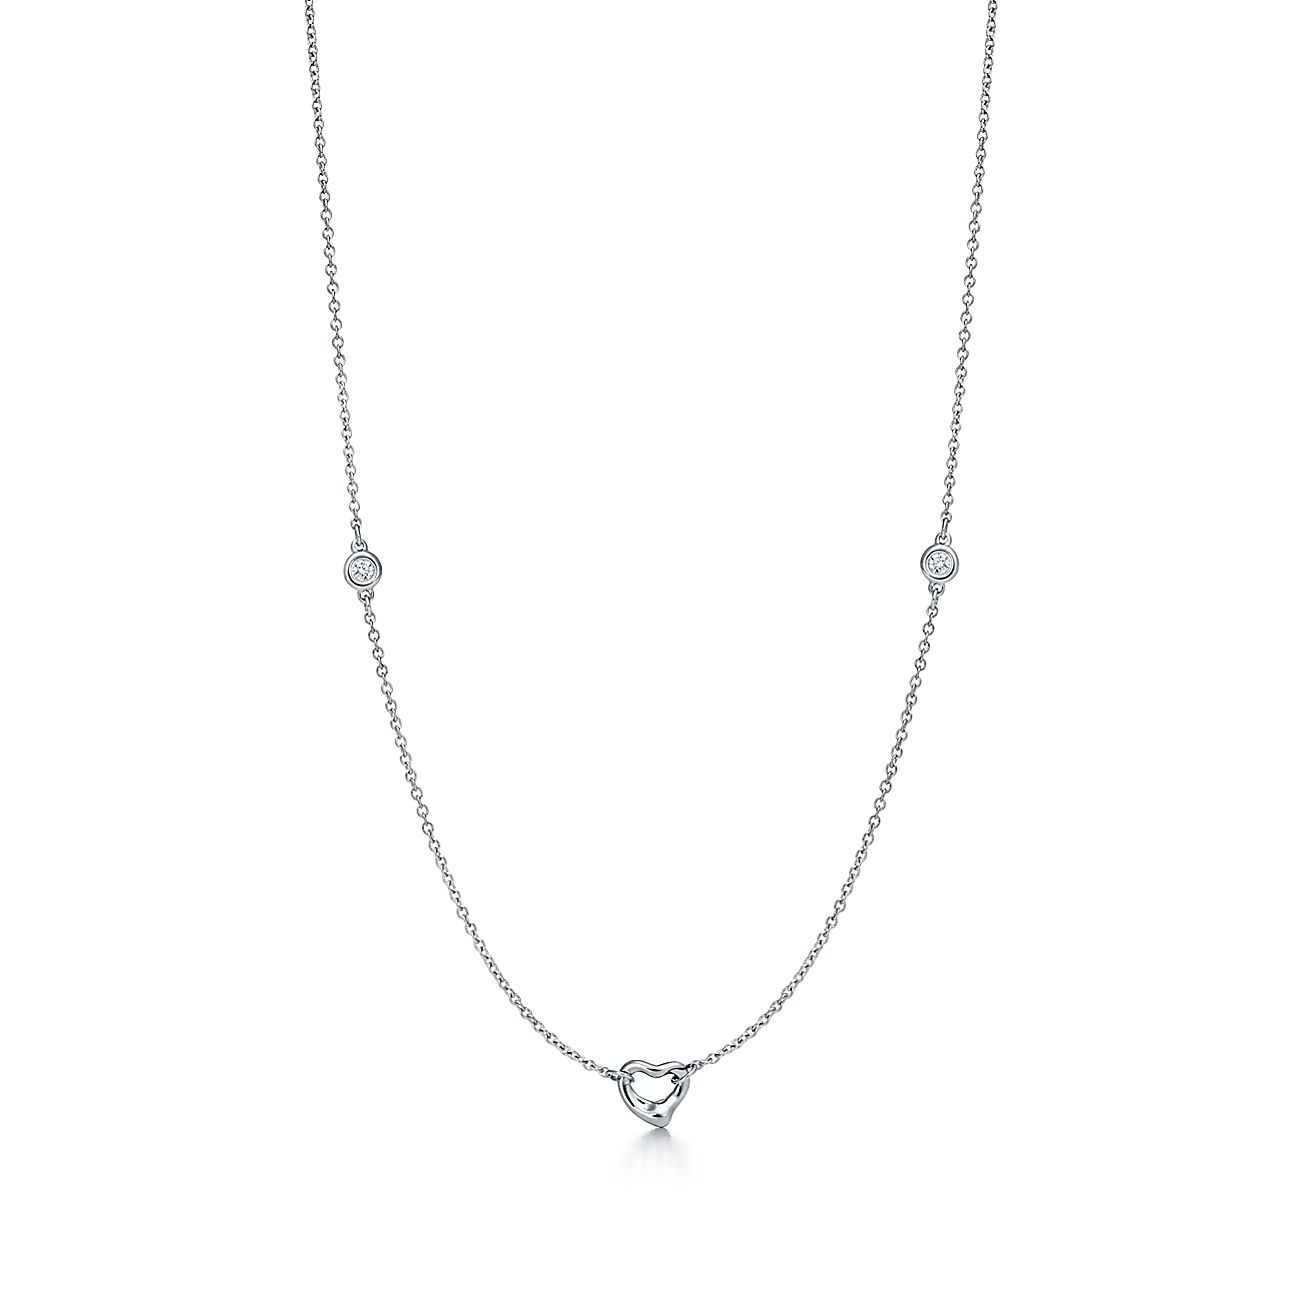 Elsa peretti diamonds by the yard open heart necklace in sterling elsa peretti diamonds by the yard open heart necklace in sterling silver tiffany co mozeypictures Image collections